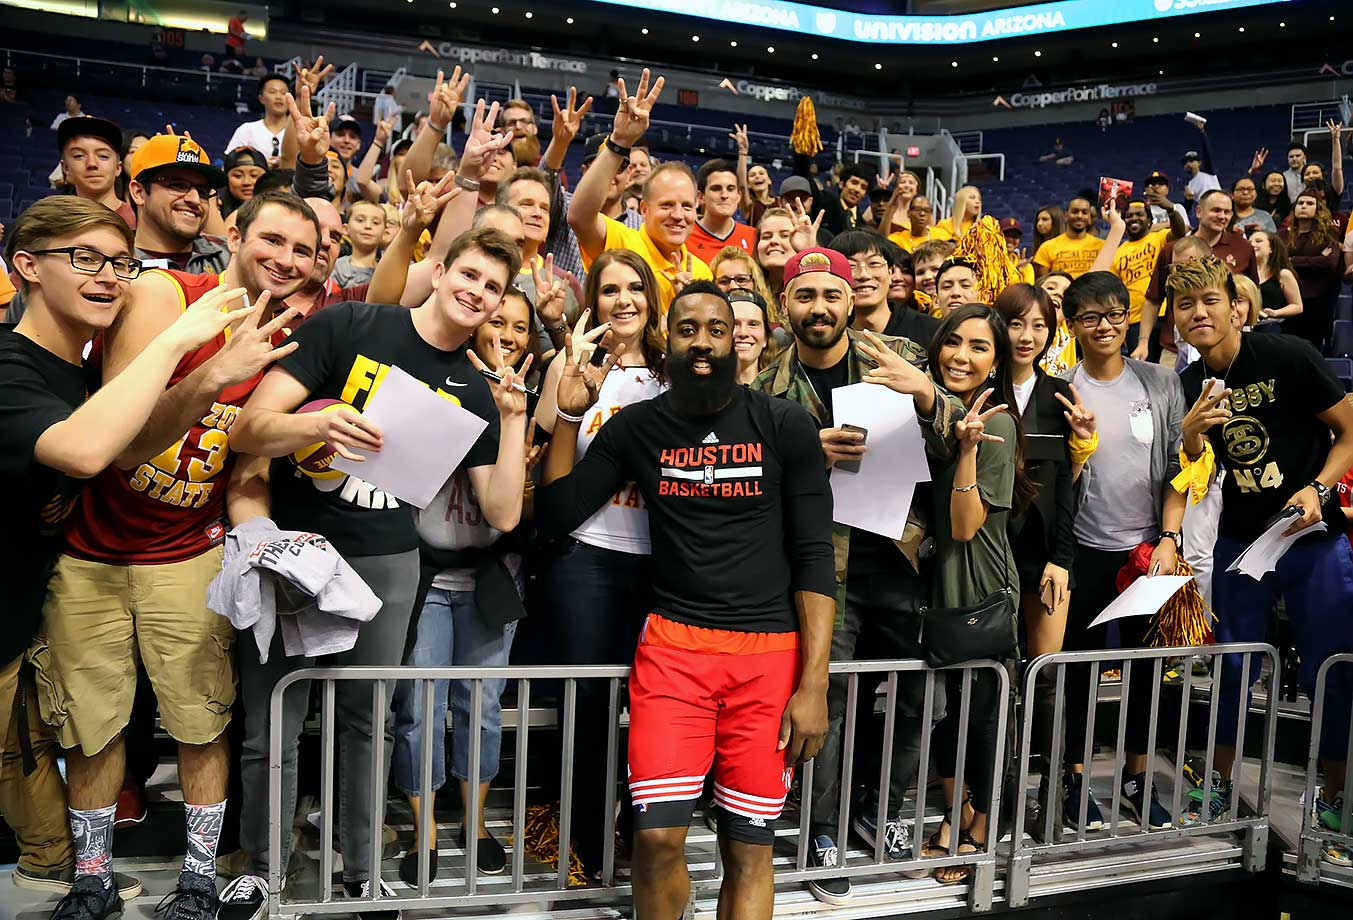 Houston Rockets shooting guard and Arizona State alumn James Harden poses with ASU fans before the Rockets game against the Phoenix Suns in Phoenix, Ariz.